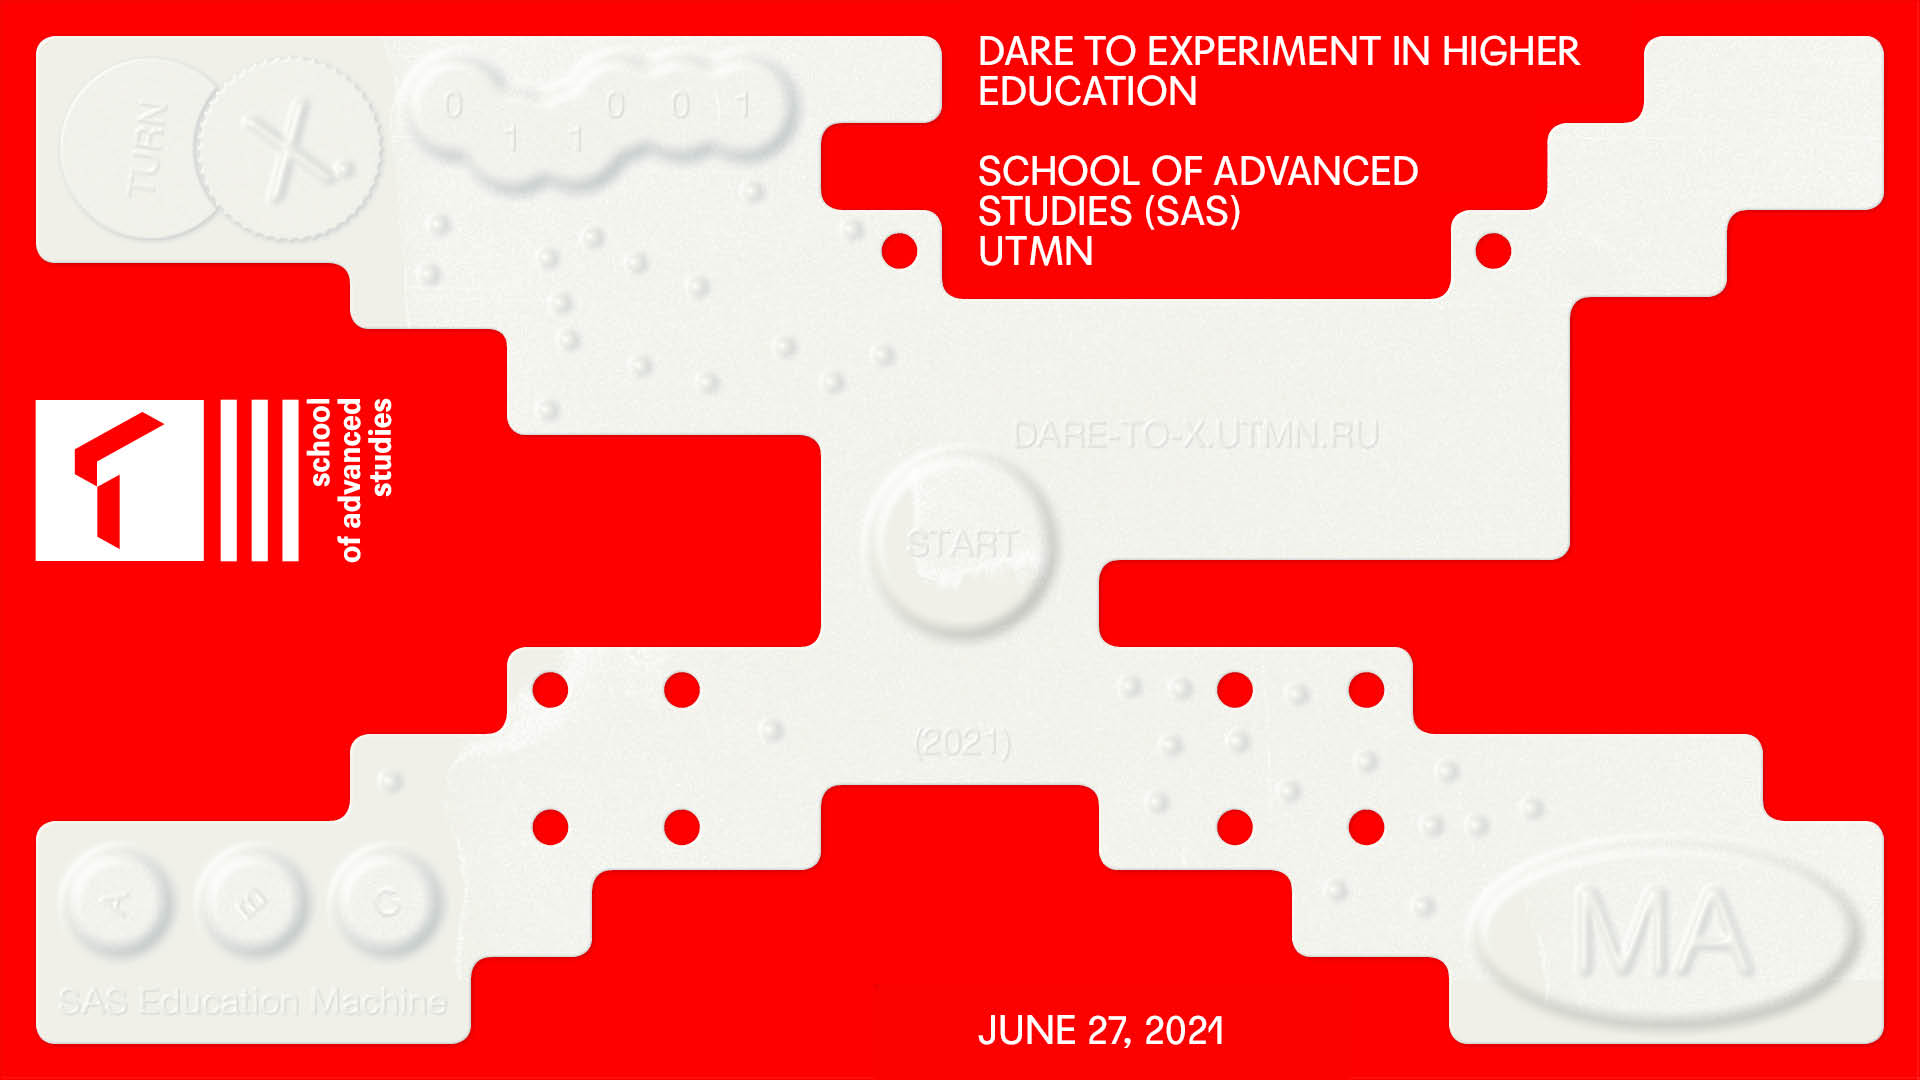 Dare to Experiment in Higher Education